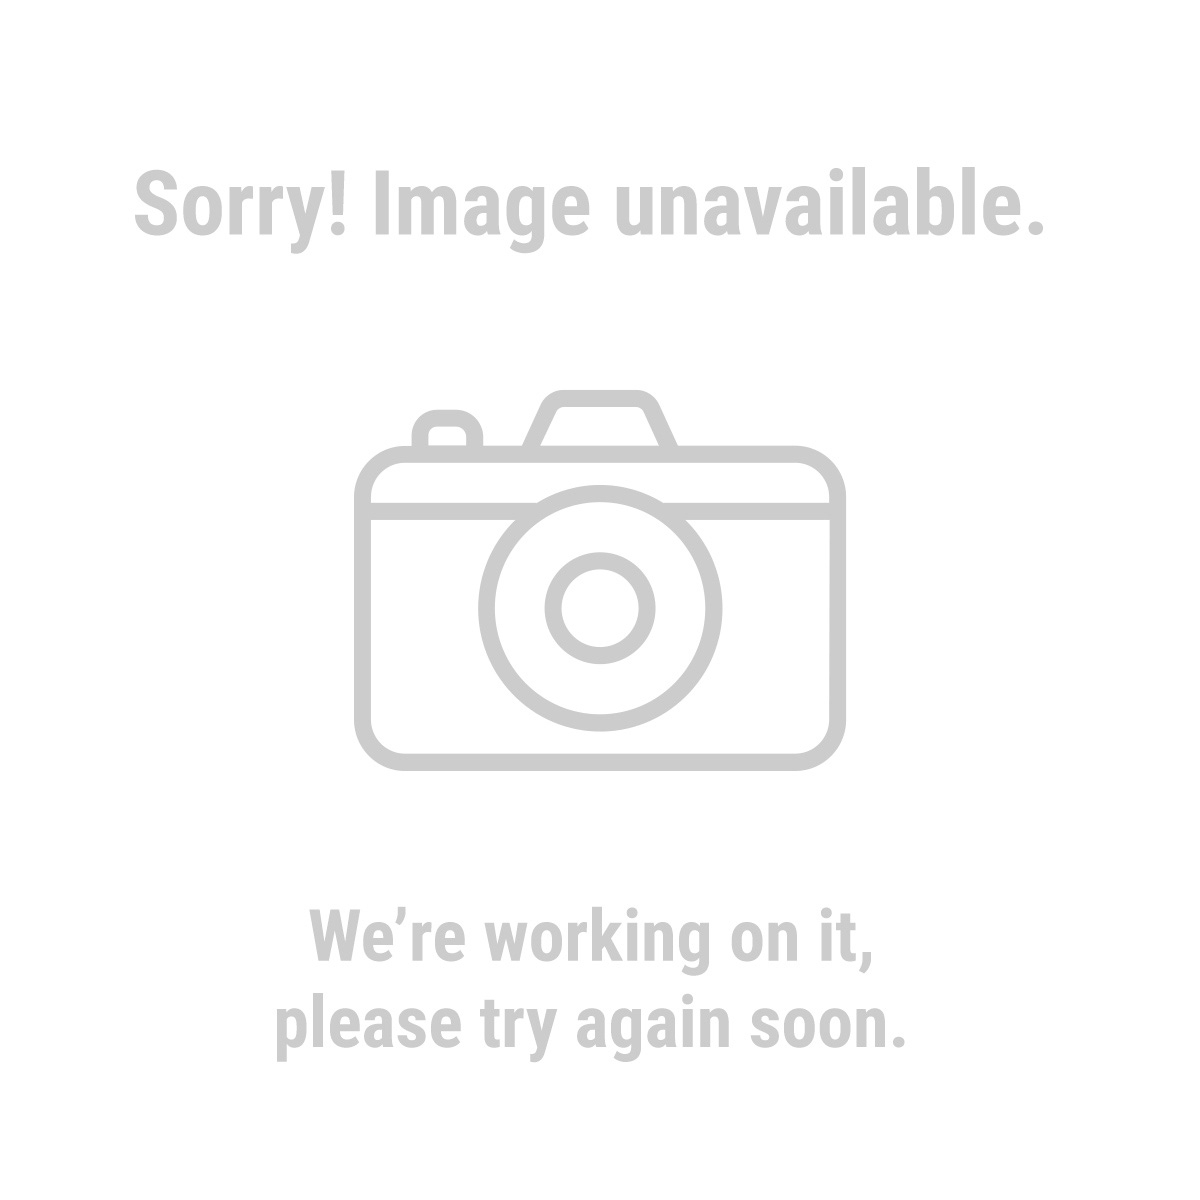 10 in. 2.5 HP Tile/Brick Saw Wet Tile Saw Wiring Diagram on